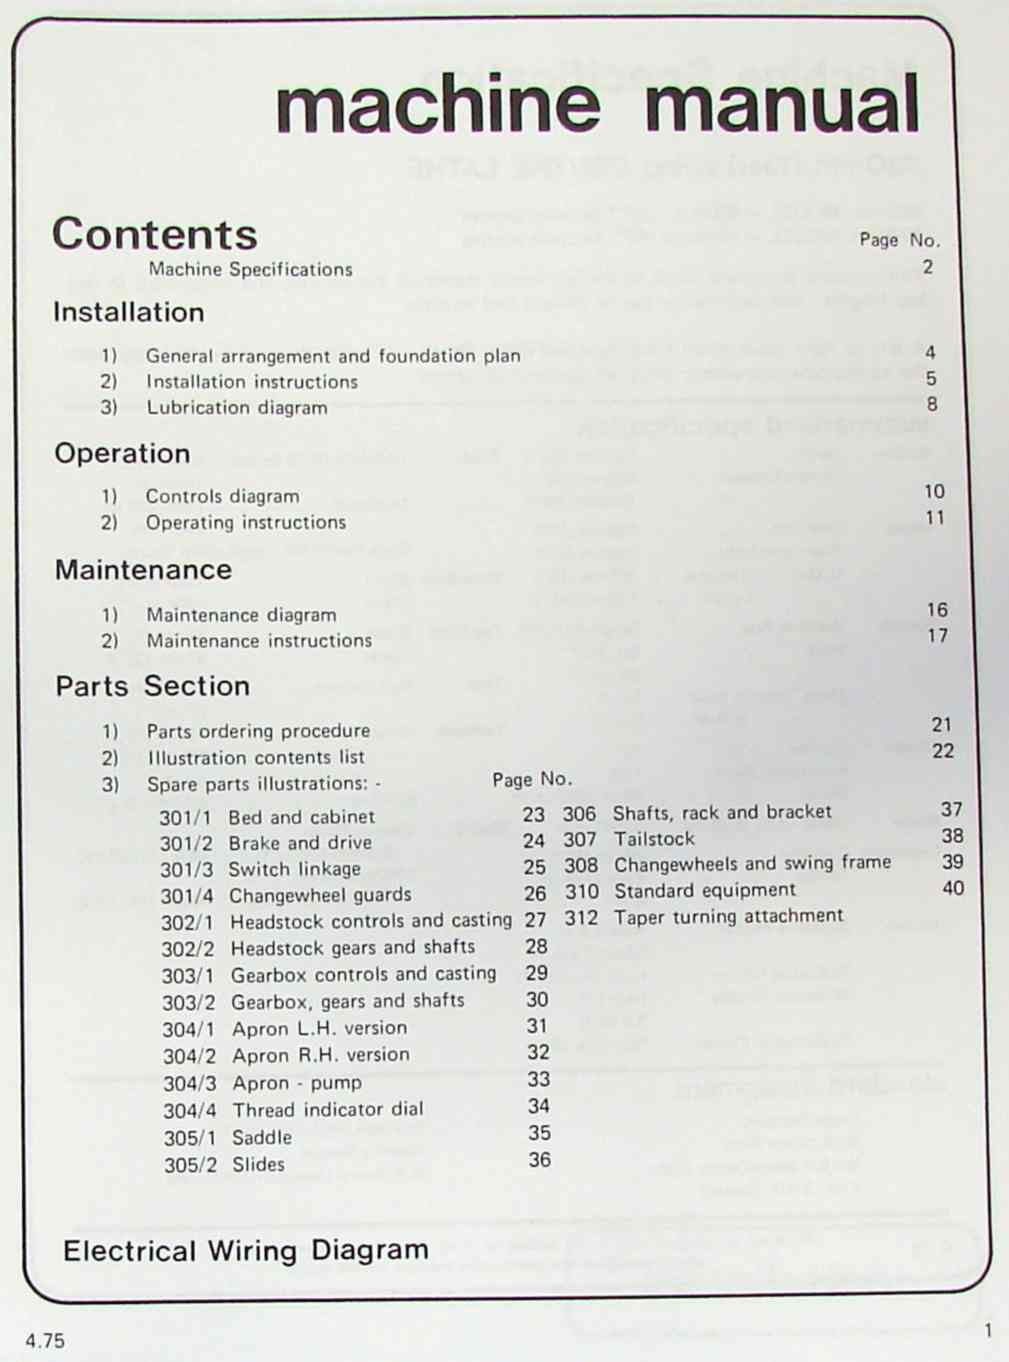 HARRISON M300 Metal Lathe Operator and Parts Manual | Ozark Tool Manuals & Books